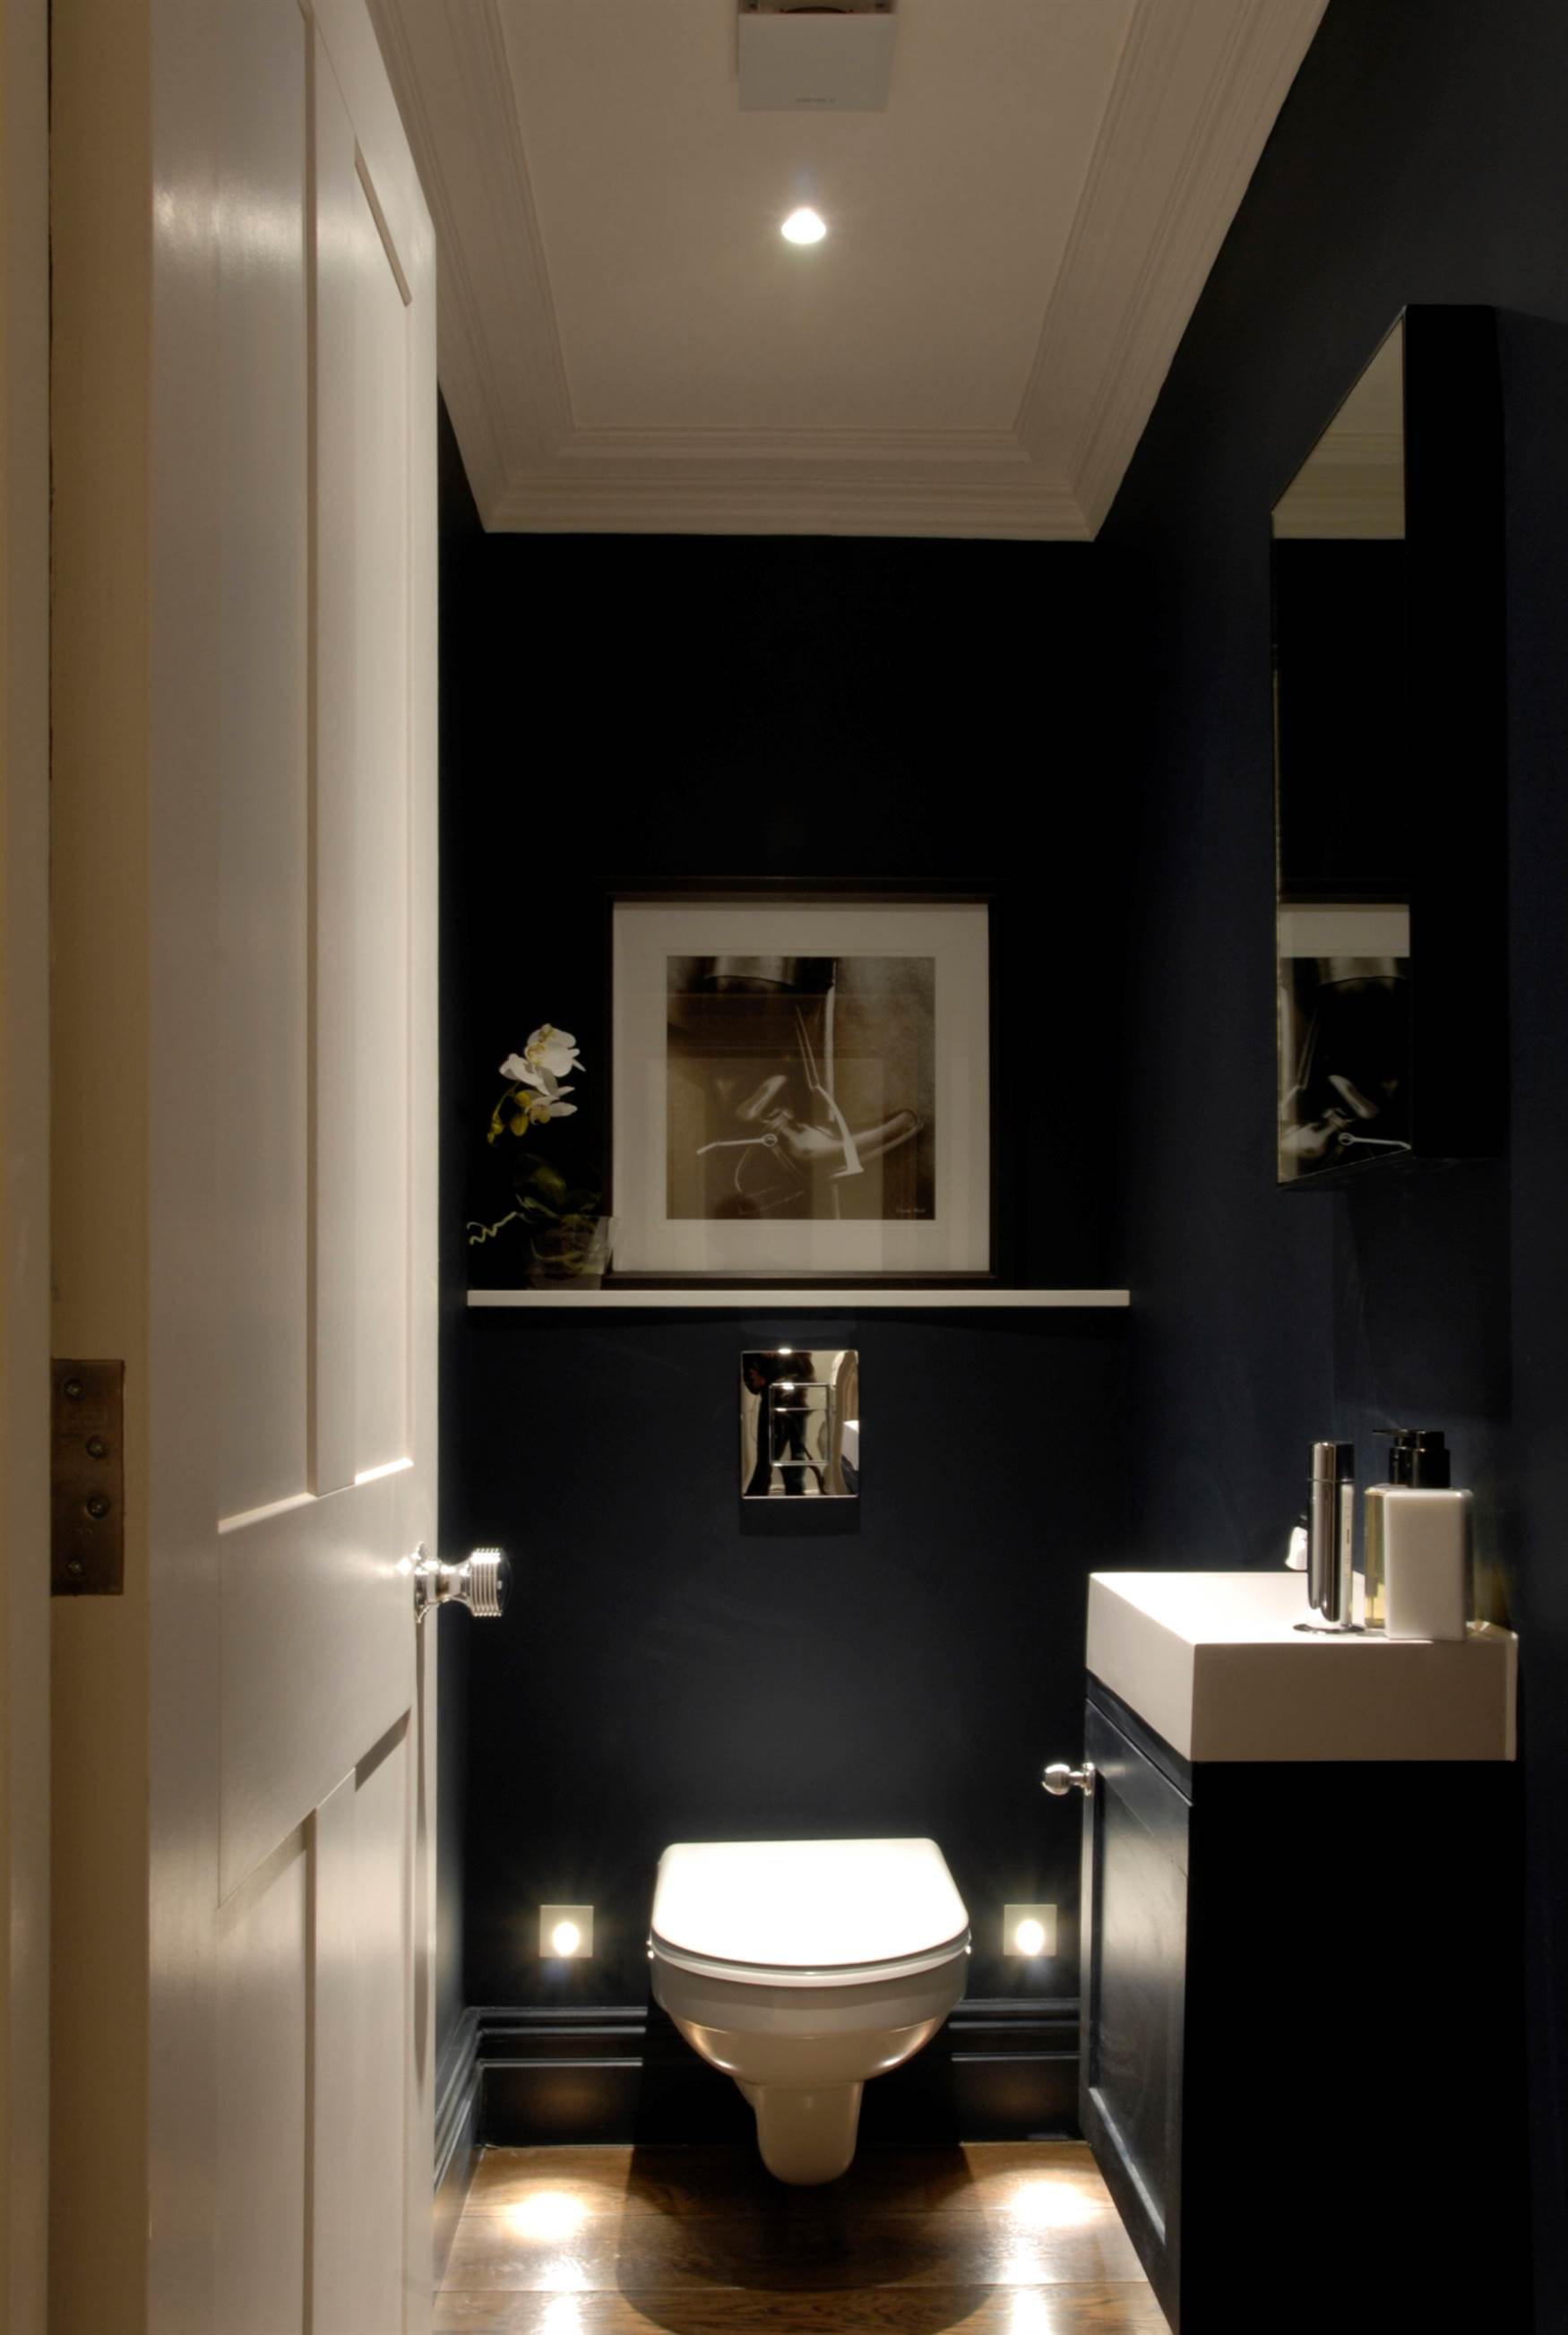 lighting in bathrooms mr resistor lighting 13486